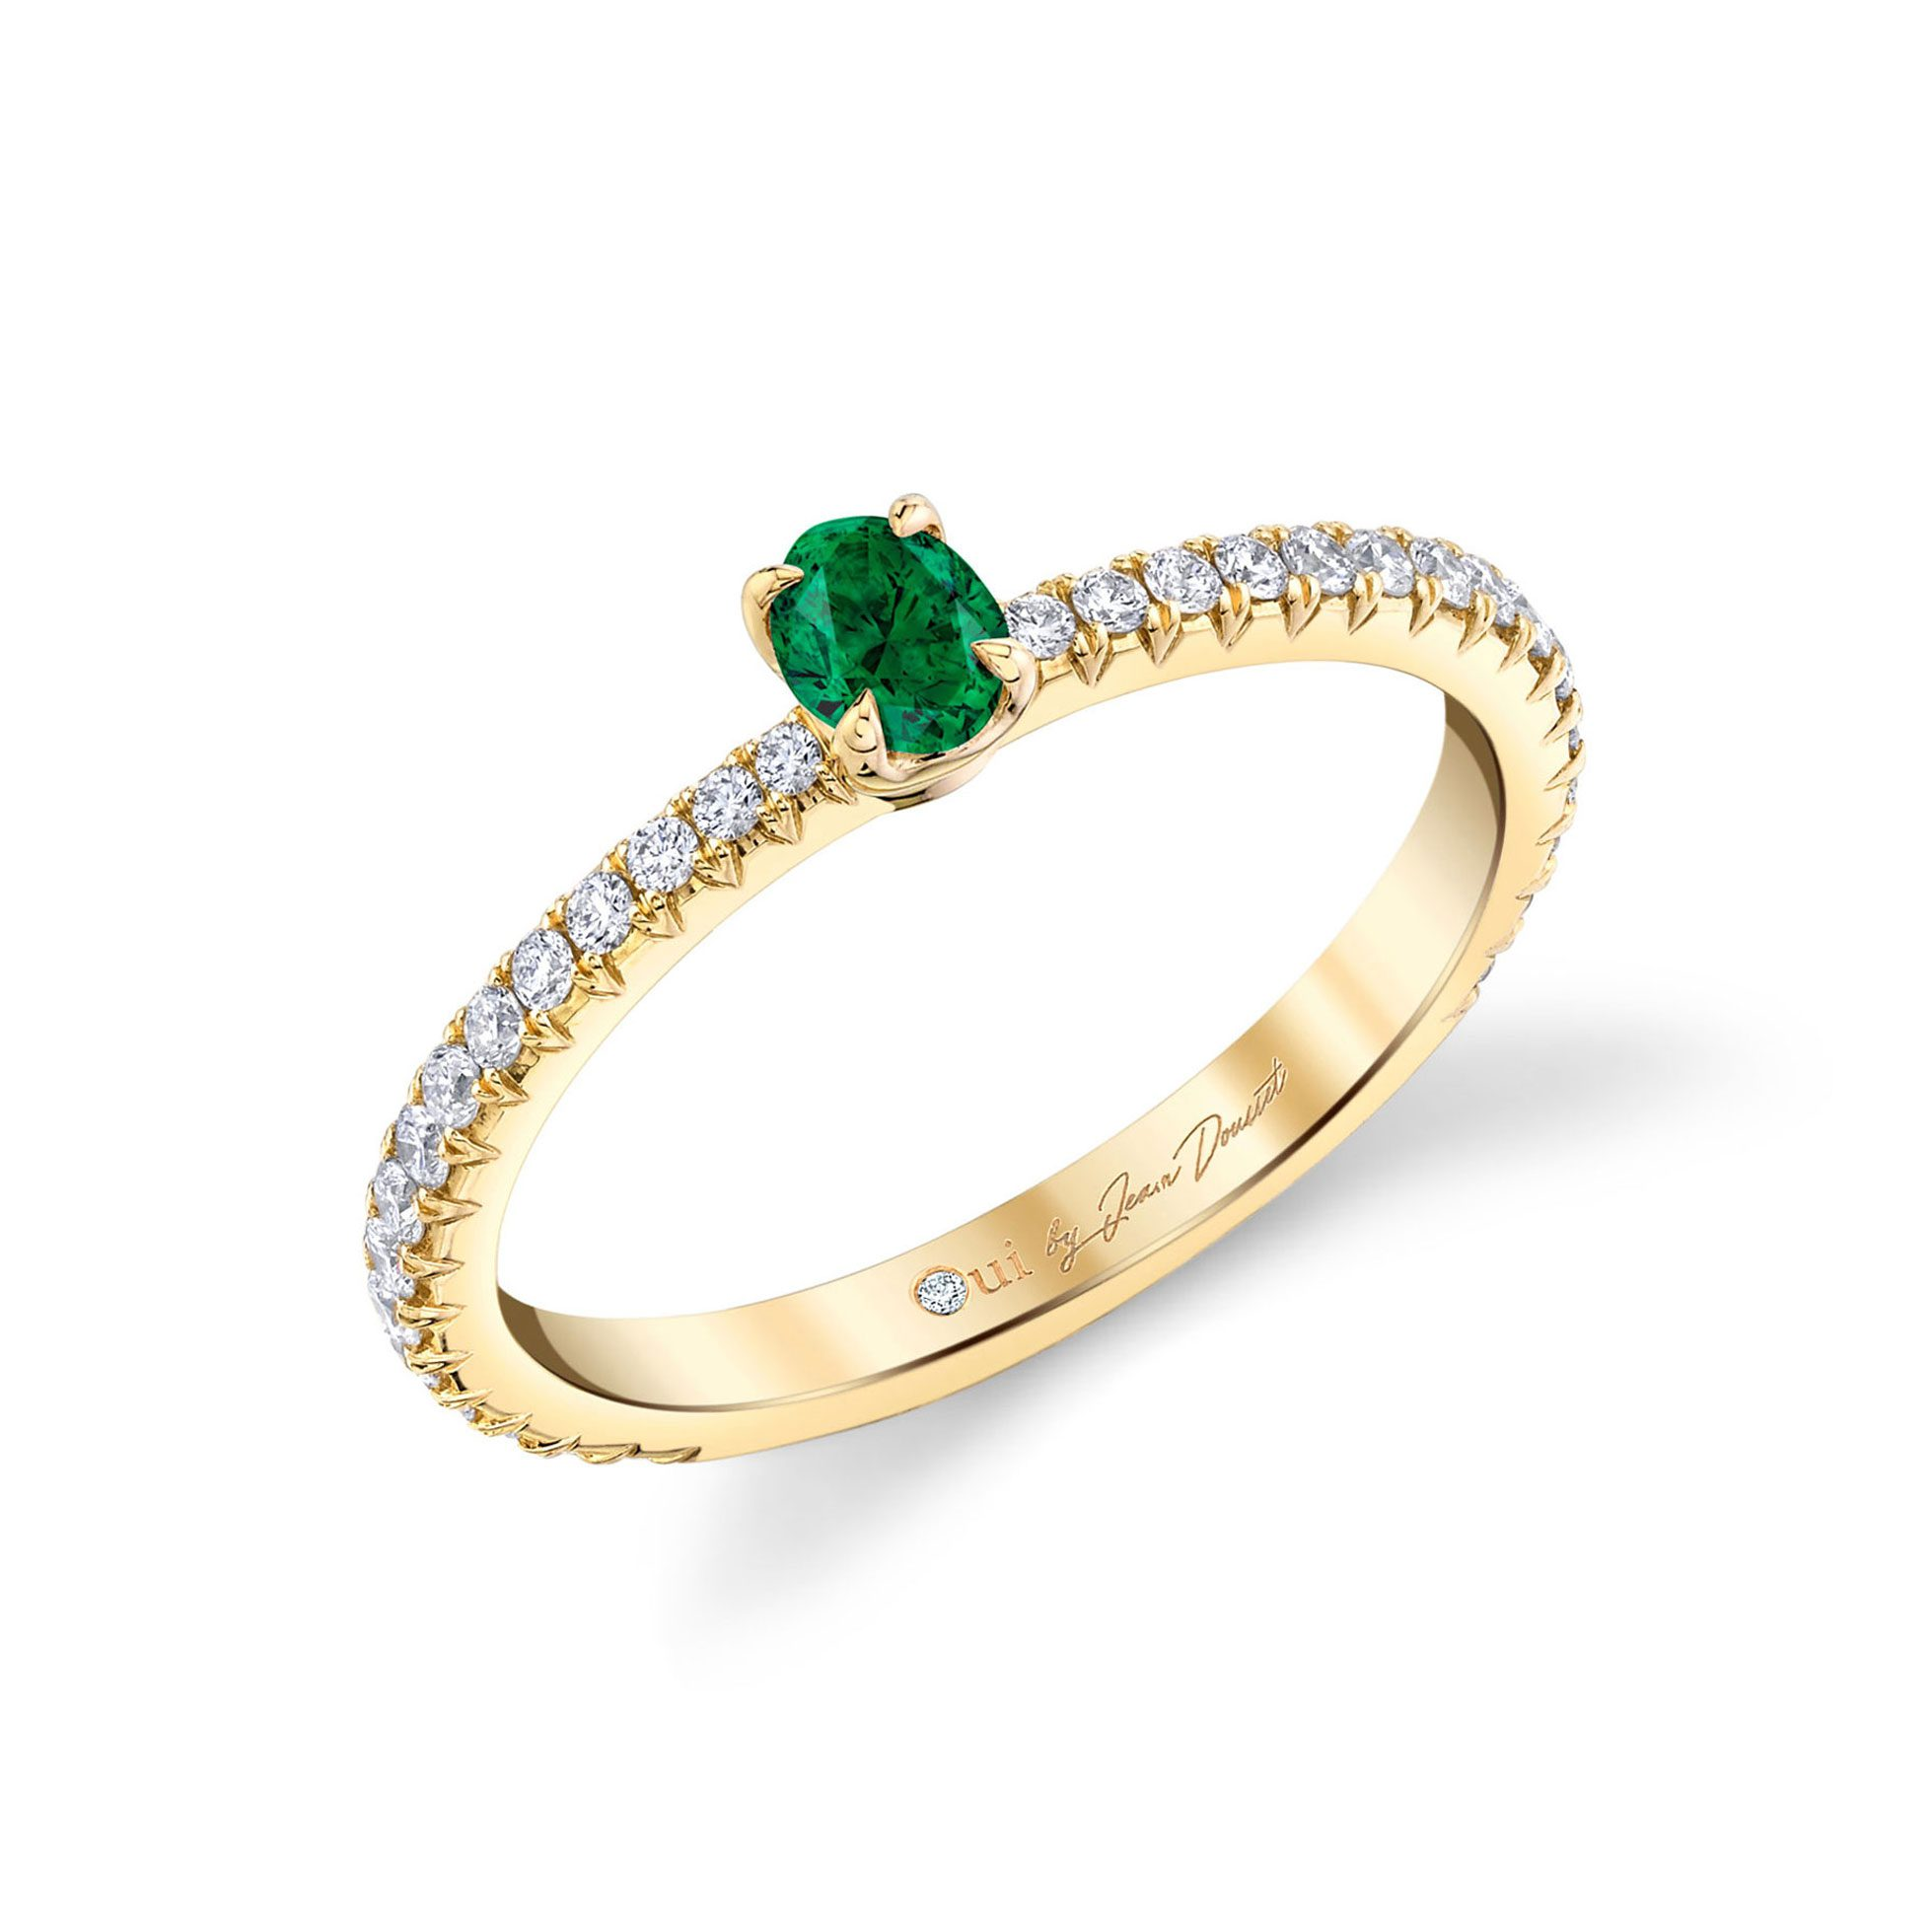 La Petite Oval Emerald Ring diamond pavé band in 18k Yellow Gold Profile View by Oui by Jean Dousset